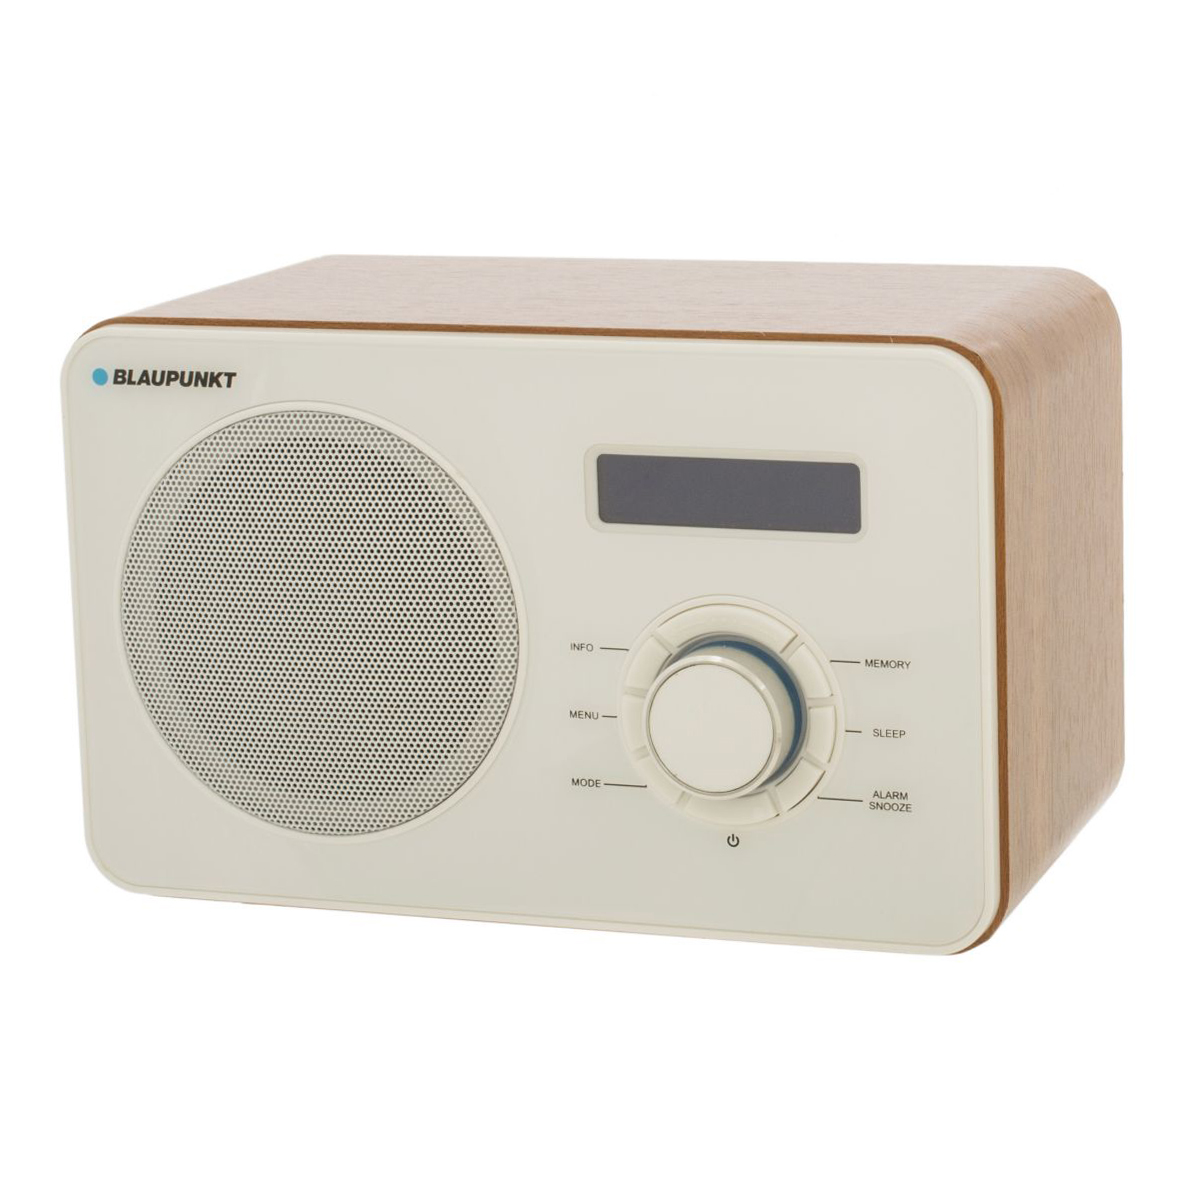 blaupunkt bpr 2 contemporary dab fm digital radio walnut. Black Bedroom Furniture Sets. Home Design Ideas